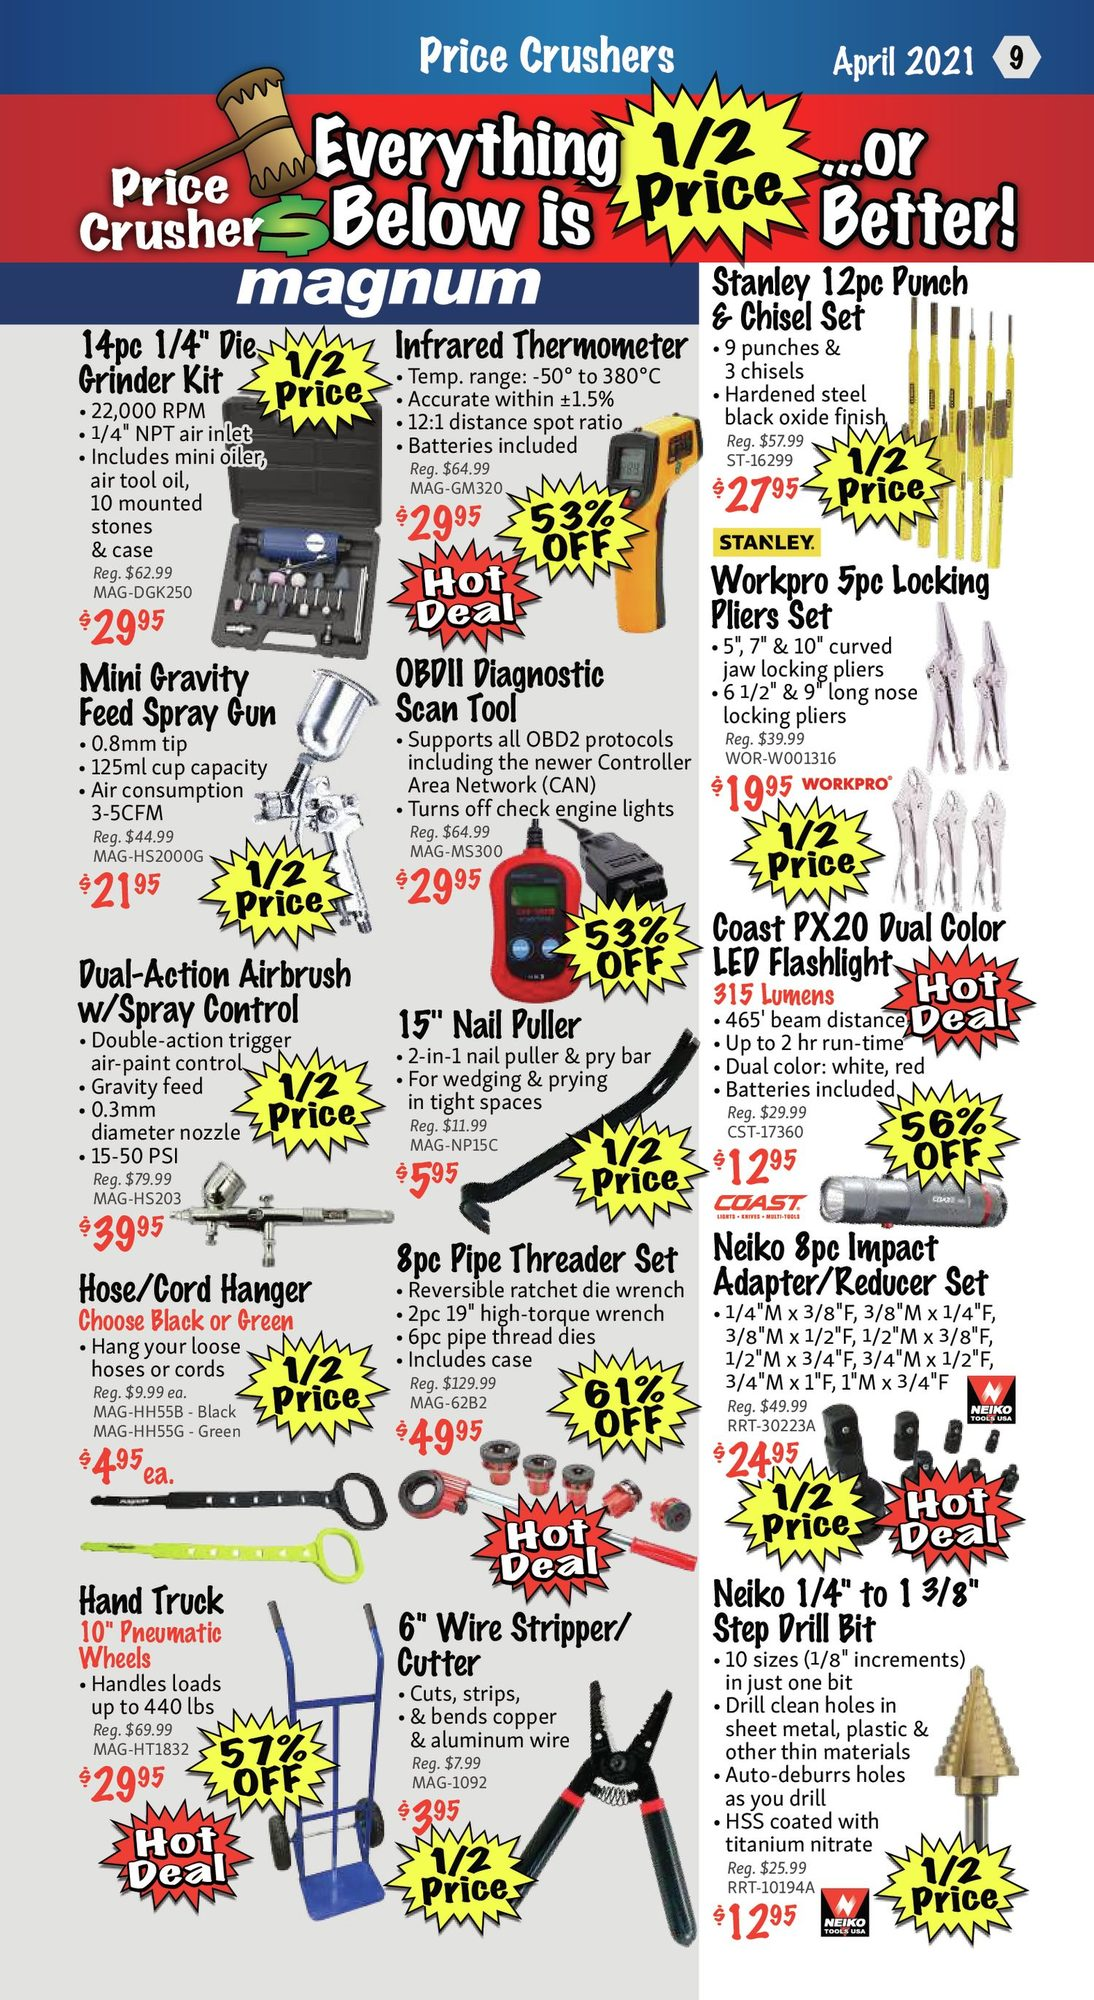 KMS Tools - Hand Tools, Air Tools & Compressor Sale - Page 9